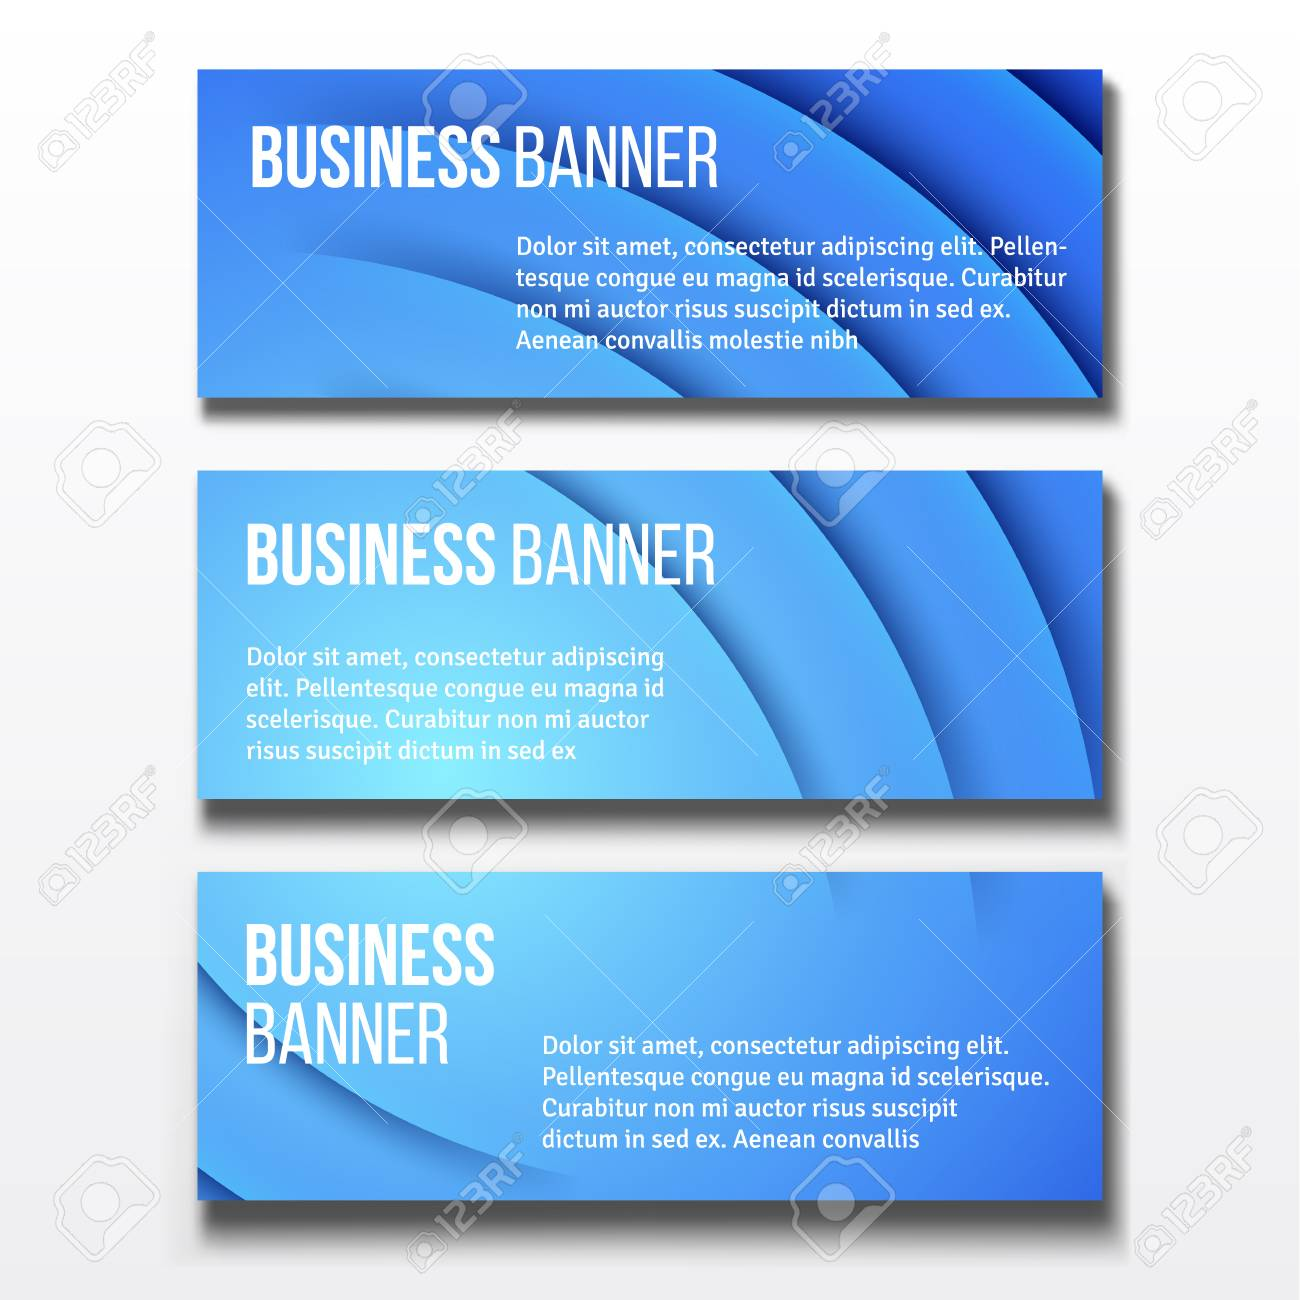 Banners set three horizontal business banner templates royalty free banners set three horizontal business banner templates stock vector 56617157 wajeb Gallery